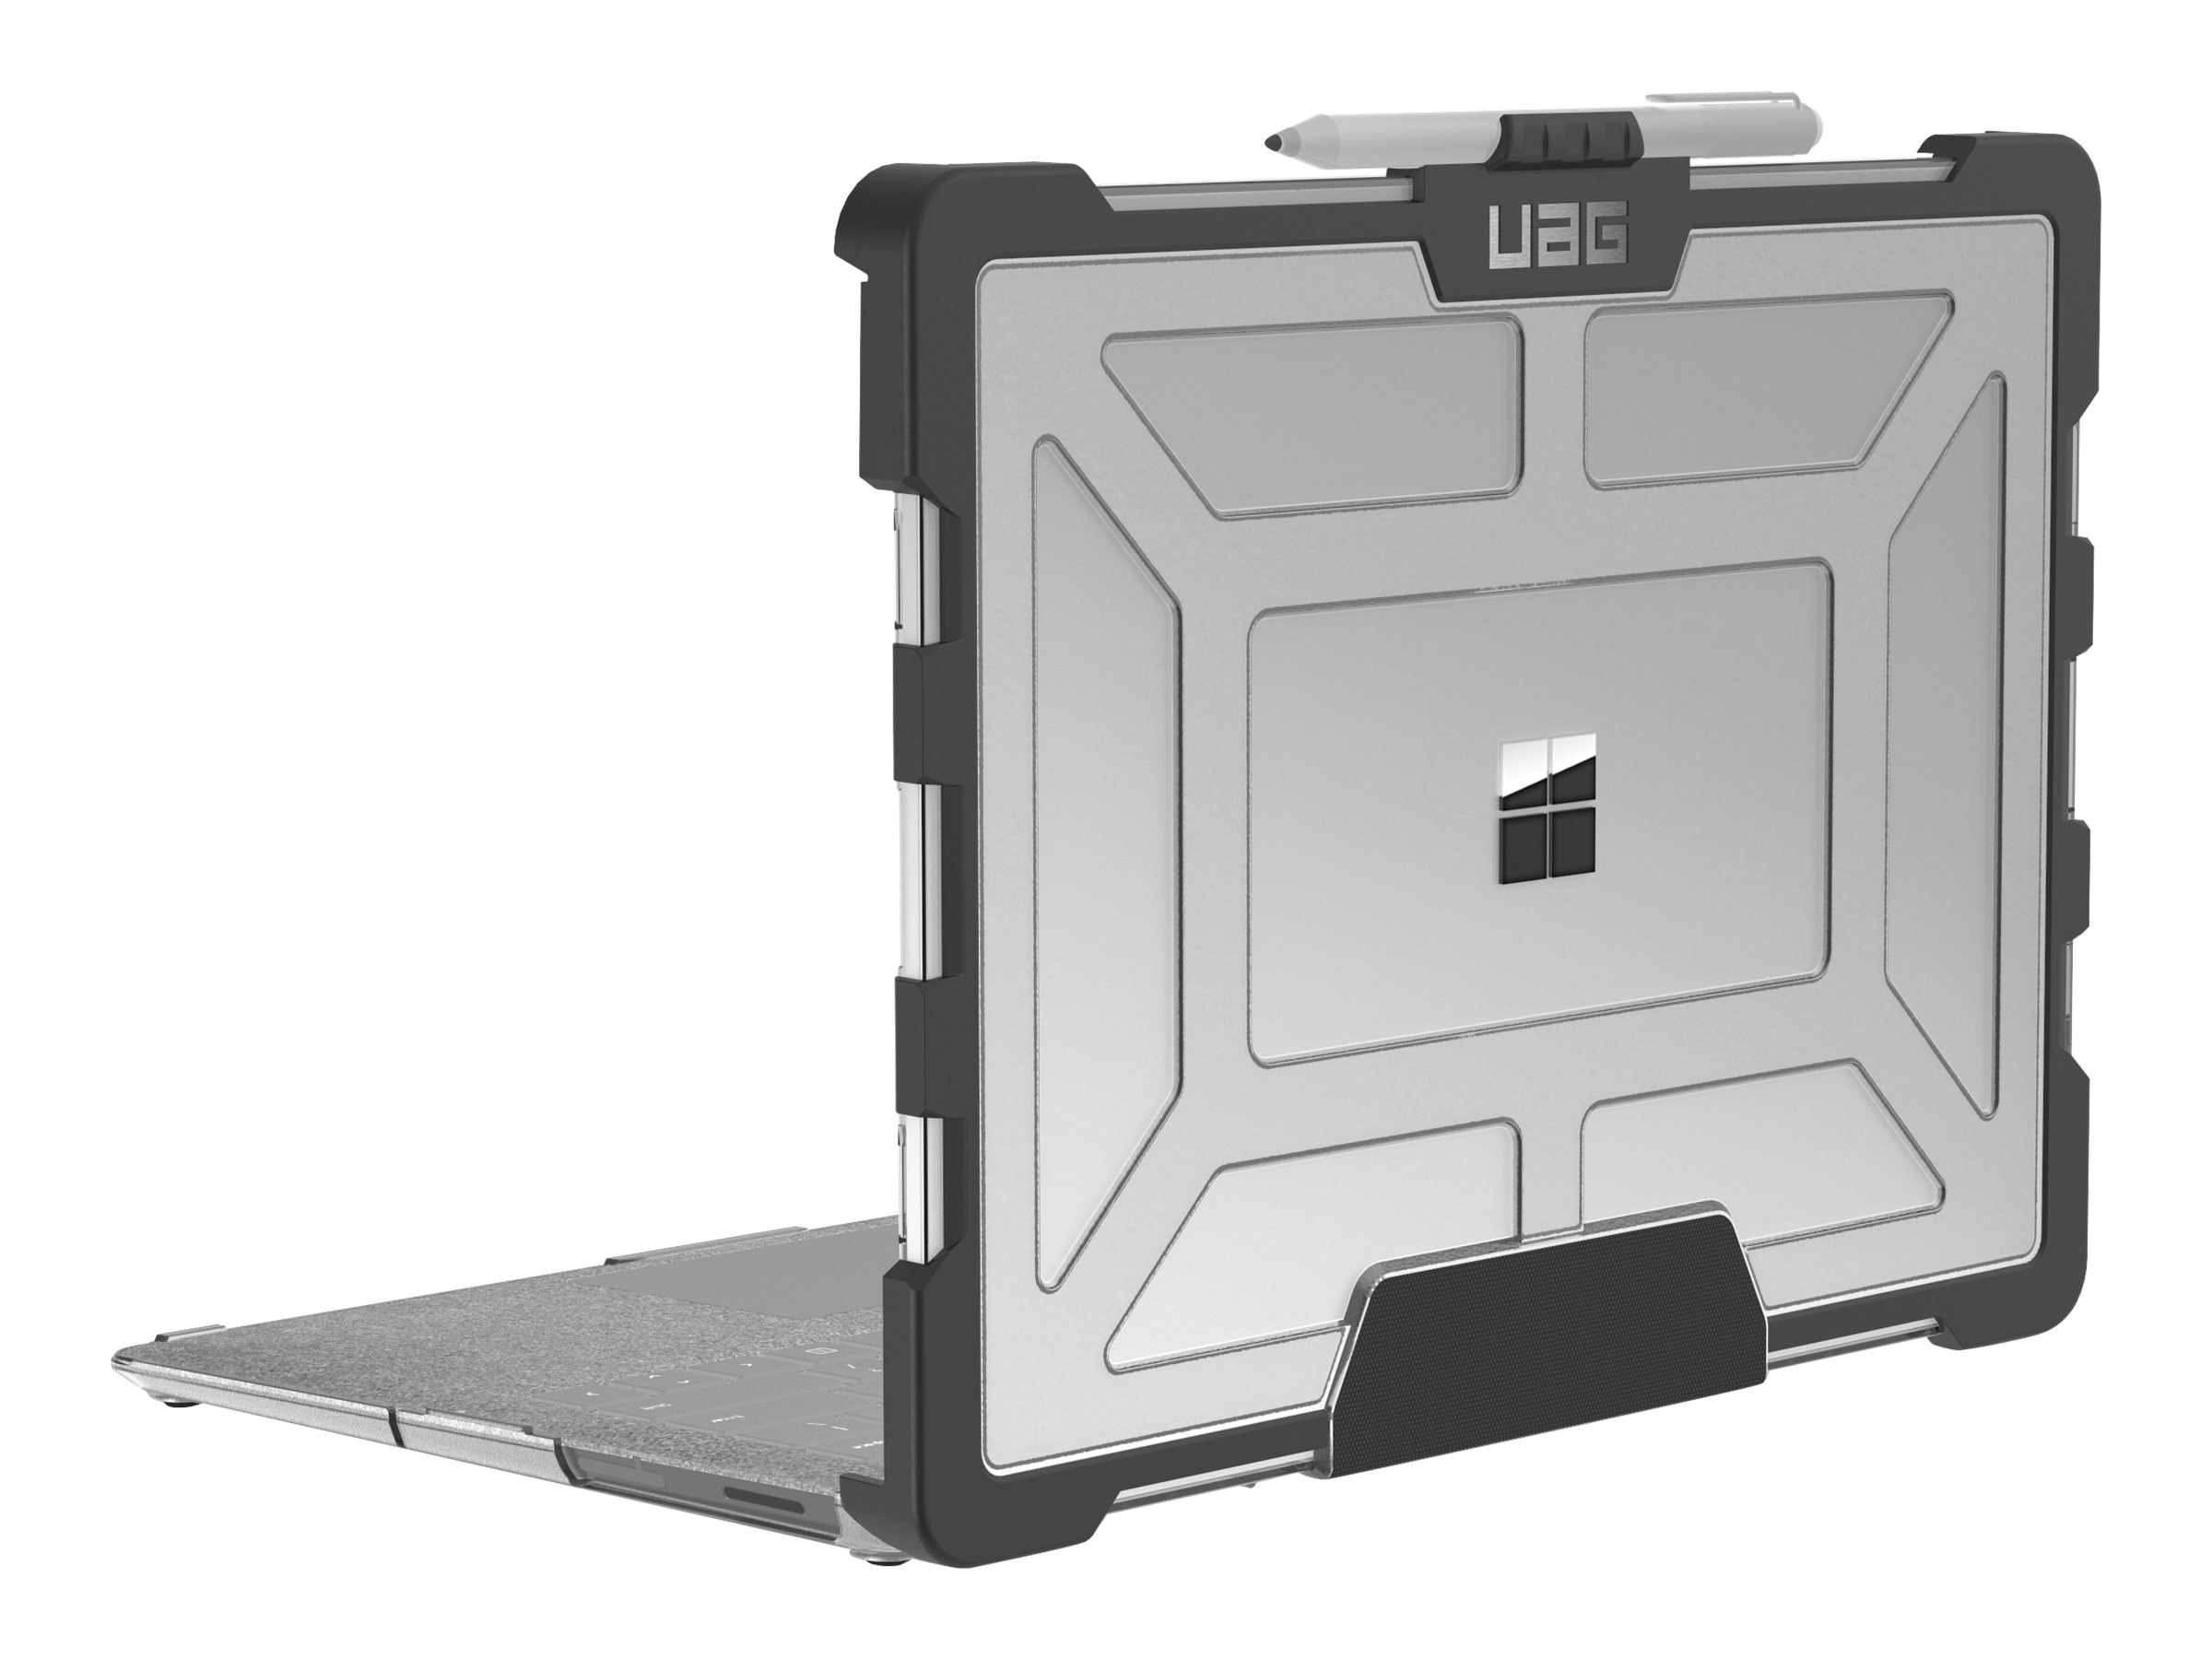 UAG Rugged Case for Surface Laptop 2 / Surface Laptop - Plasma Ice notebook top and rear cover